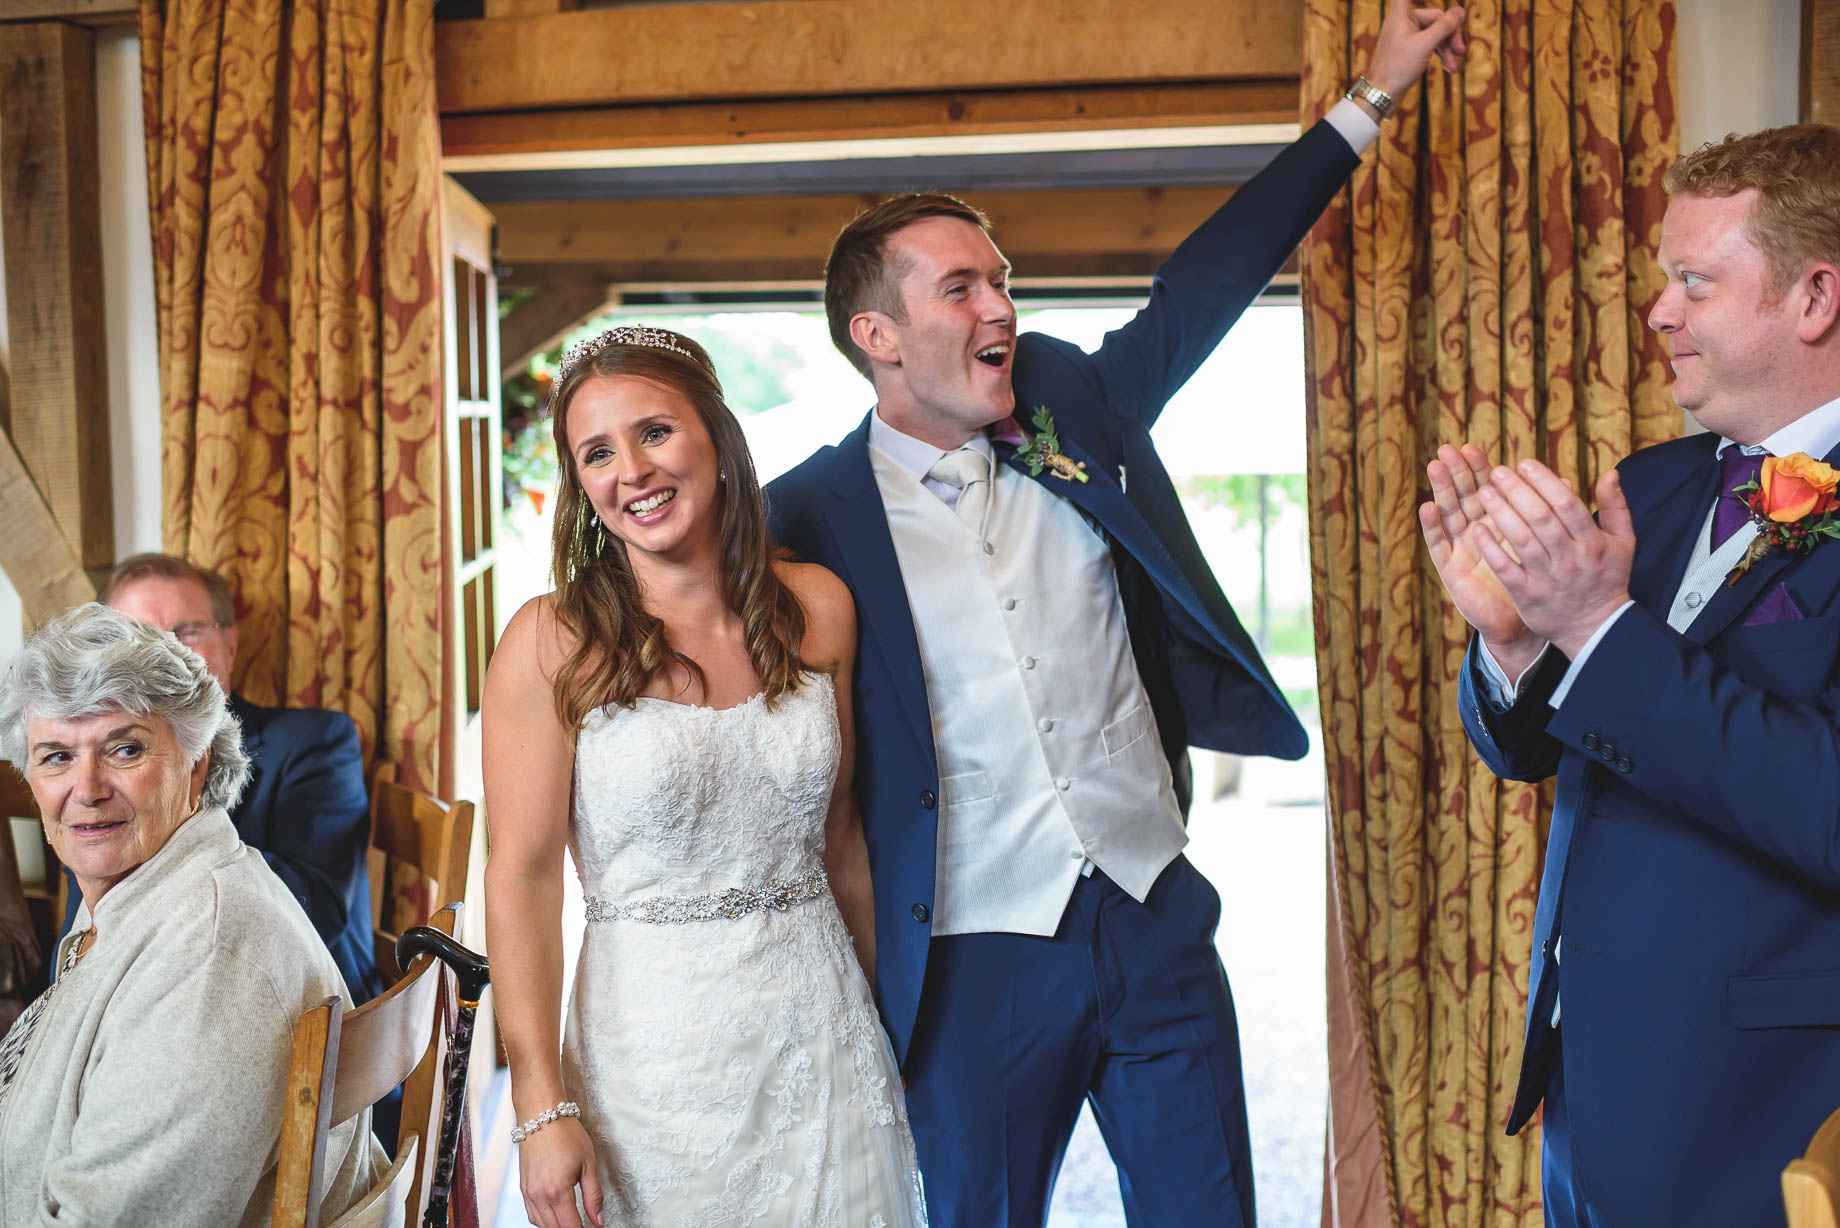 Gate Street Barn wedding photography - Guy Collier - Claire and Andy (126 of 192)